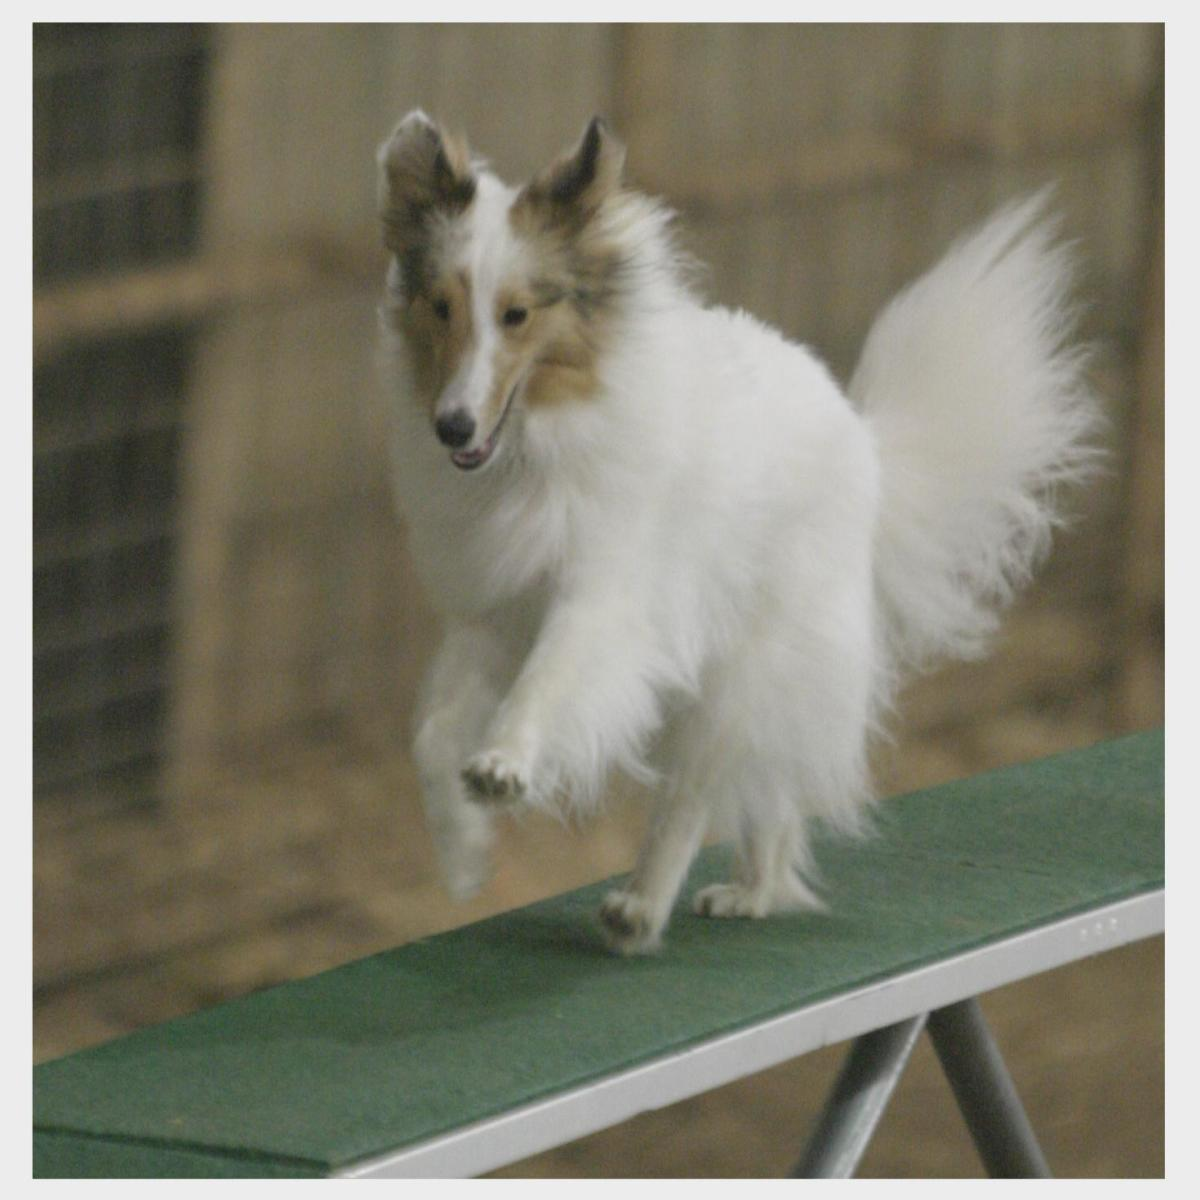 The author's sheltie, Jericho, happily takes the dog walk in the Novice class.